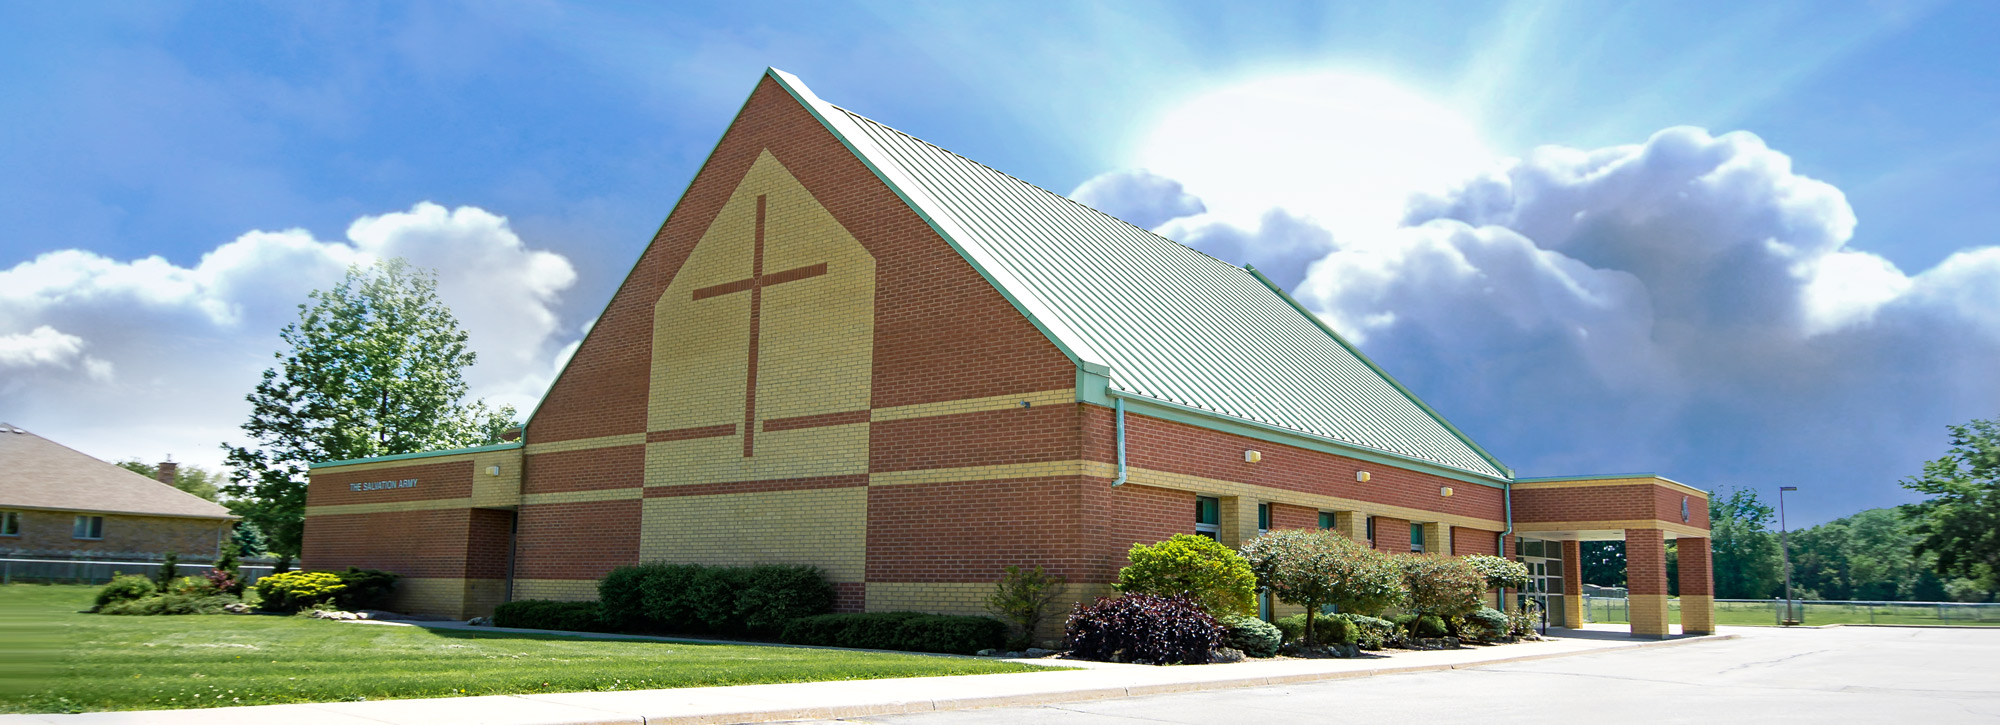 The Salvation Army Chatham-Kent Ministries Location image